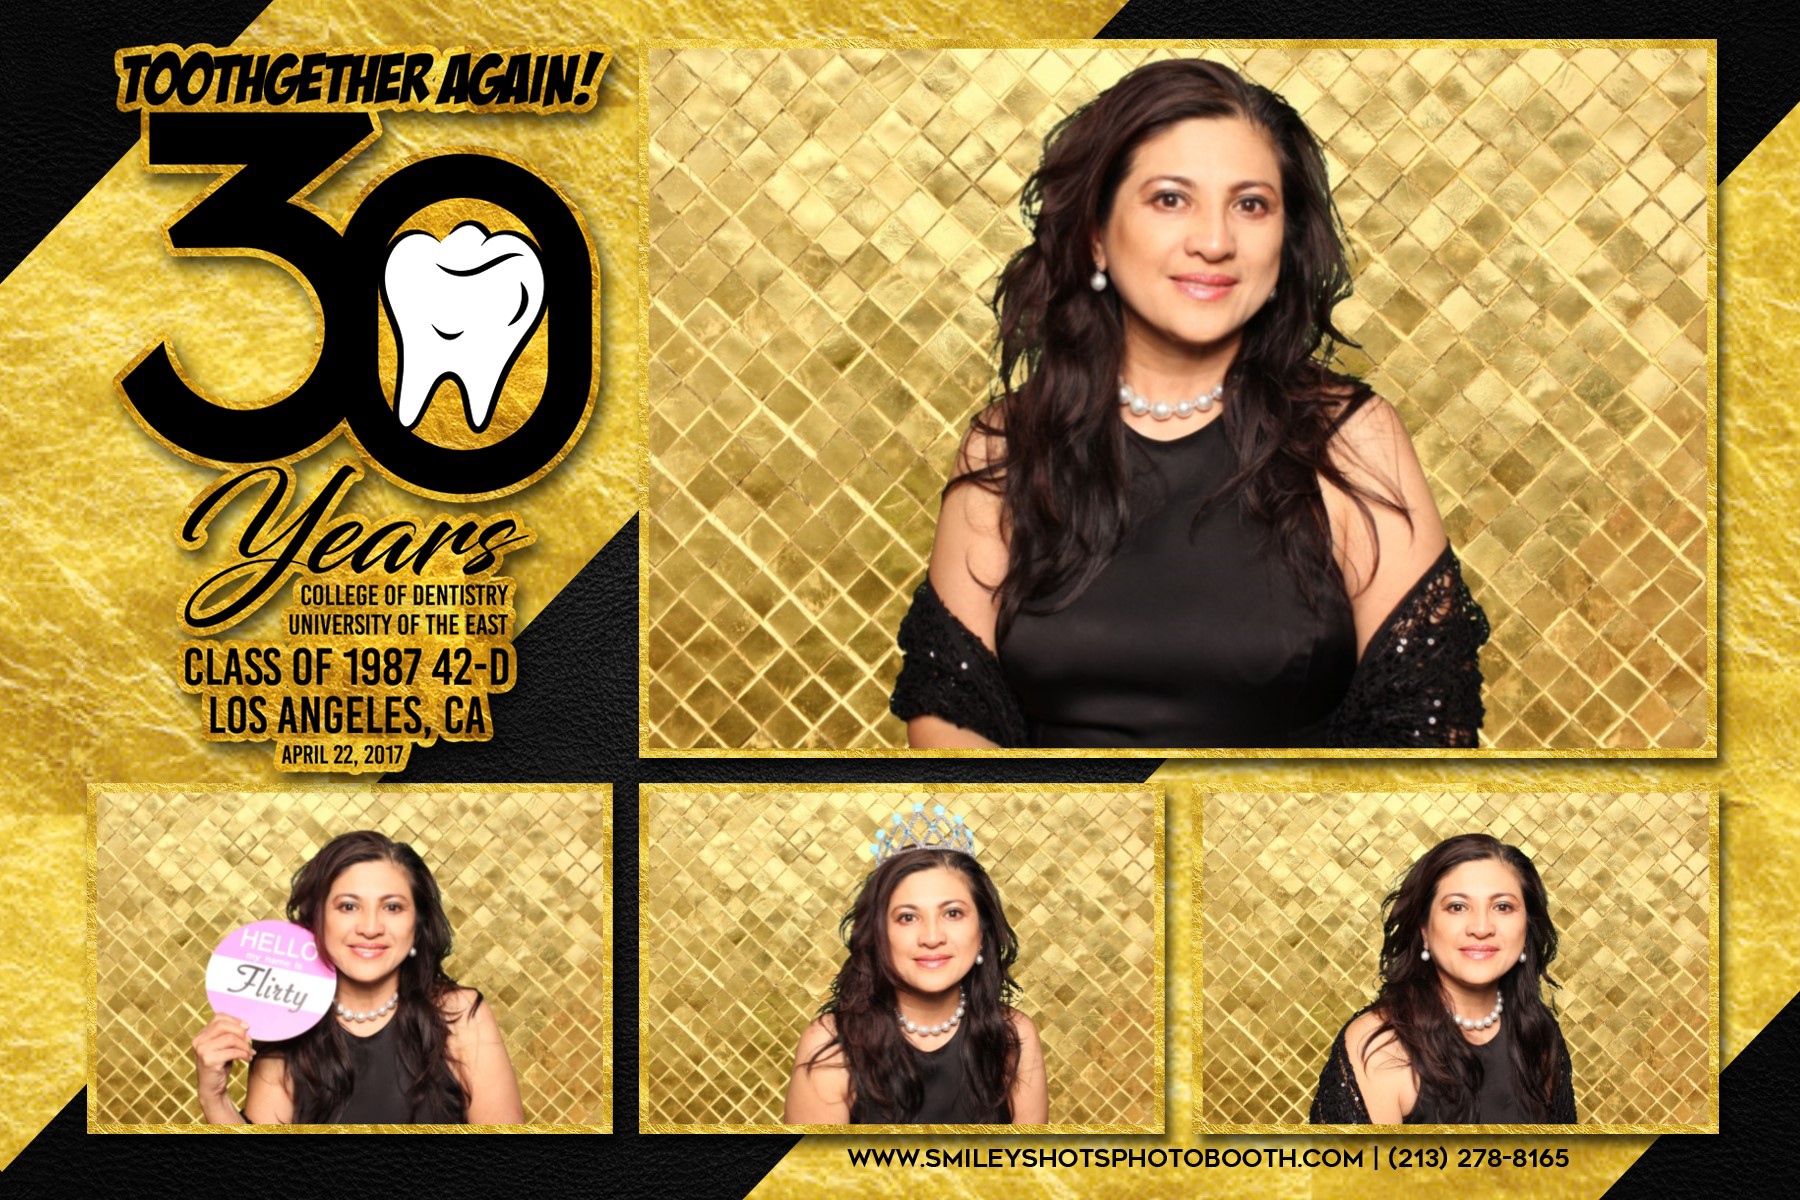 30th Years Dental UE Smiley Shots Photo Booth Photobooth (24).png